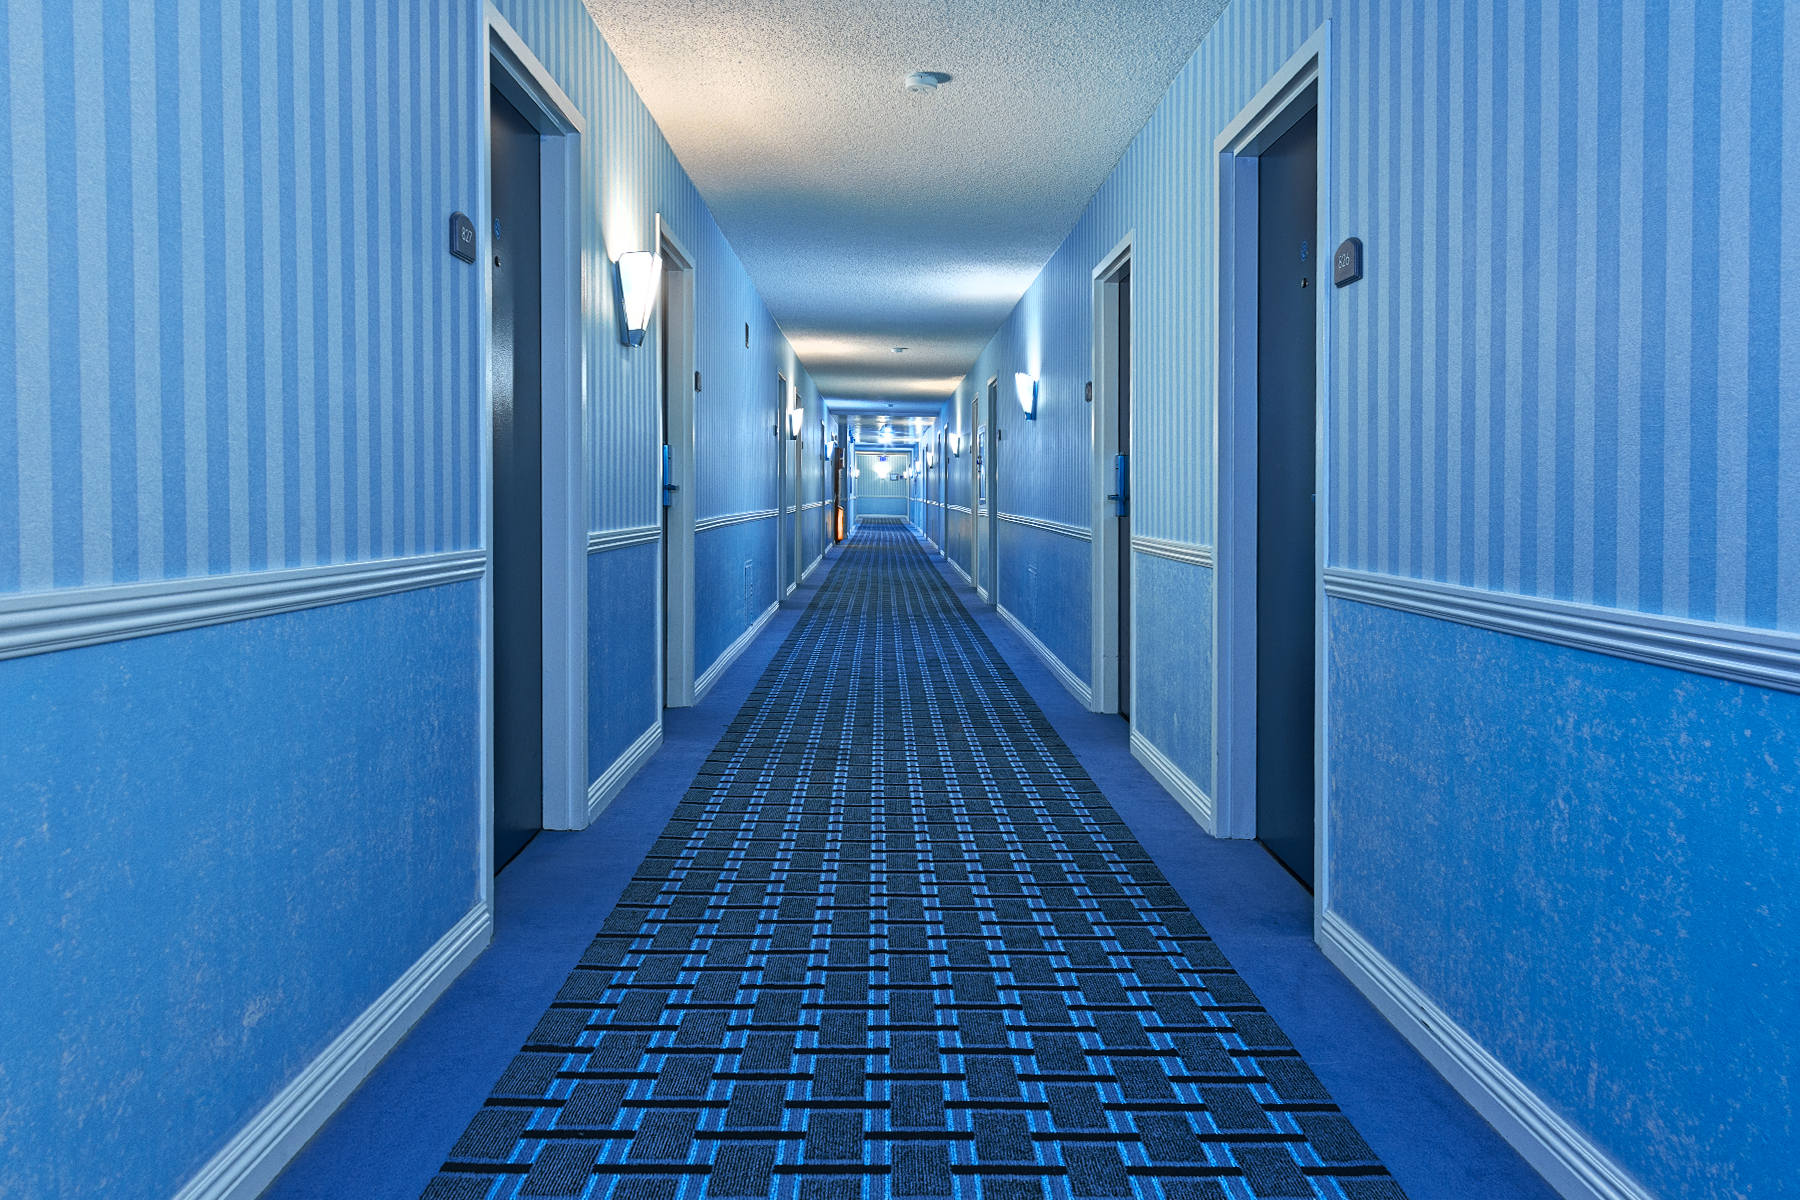 Illuminated Corridor - Cool Blue HDR, Accommodation, Outdoors, Range, Pretty, HQ Photo